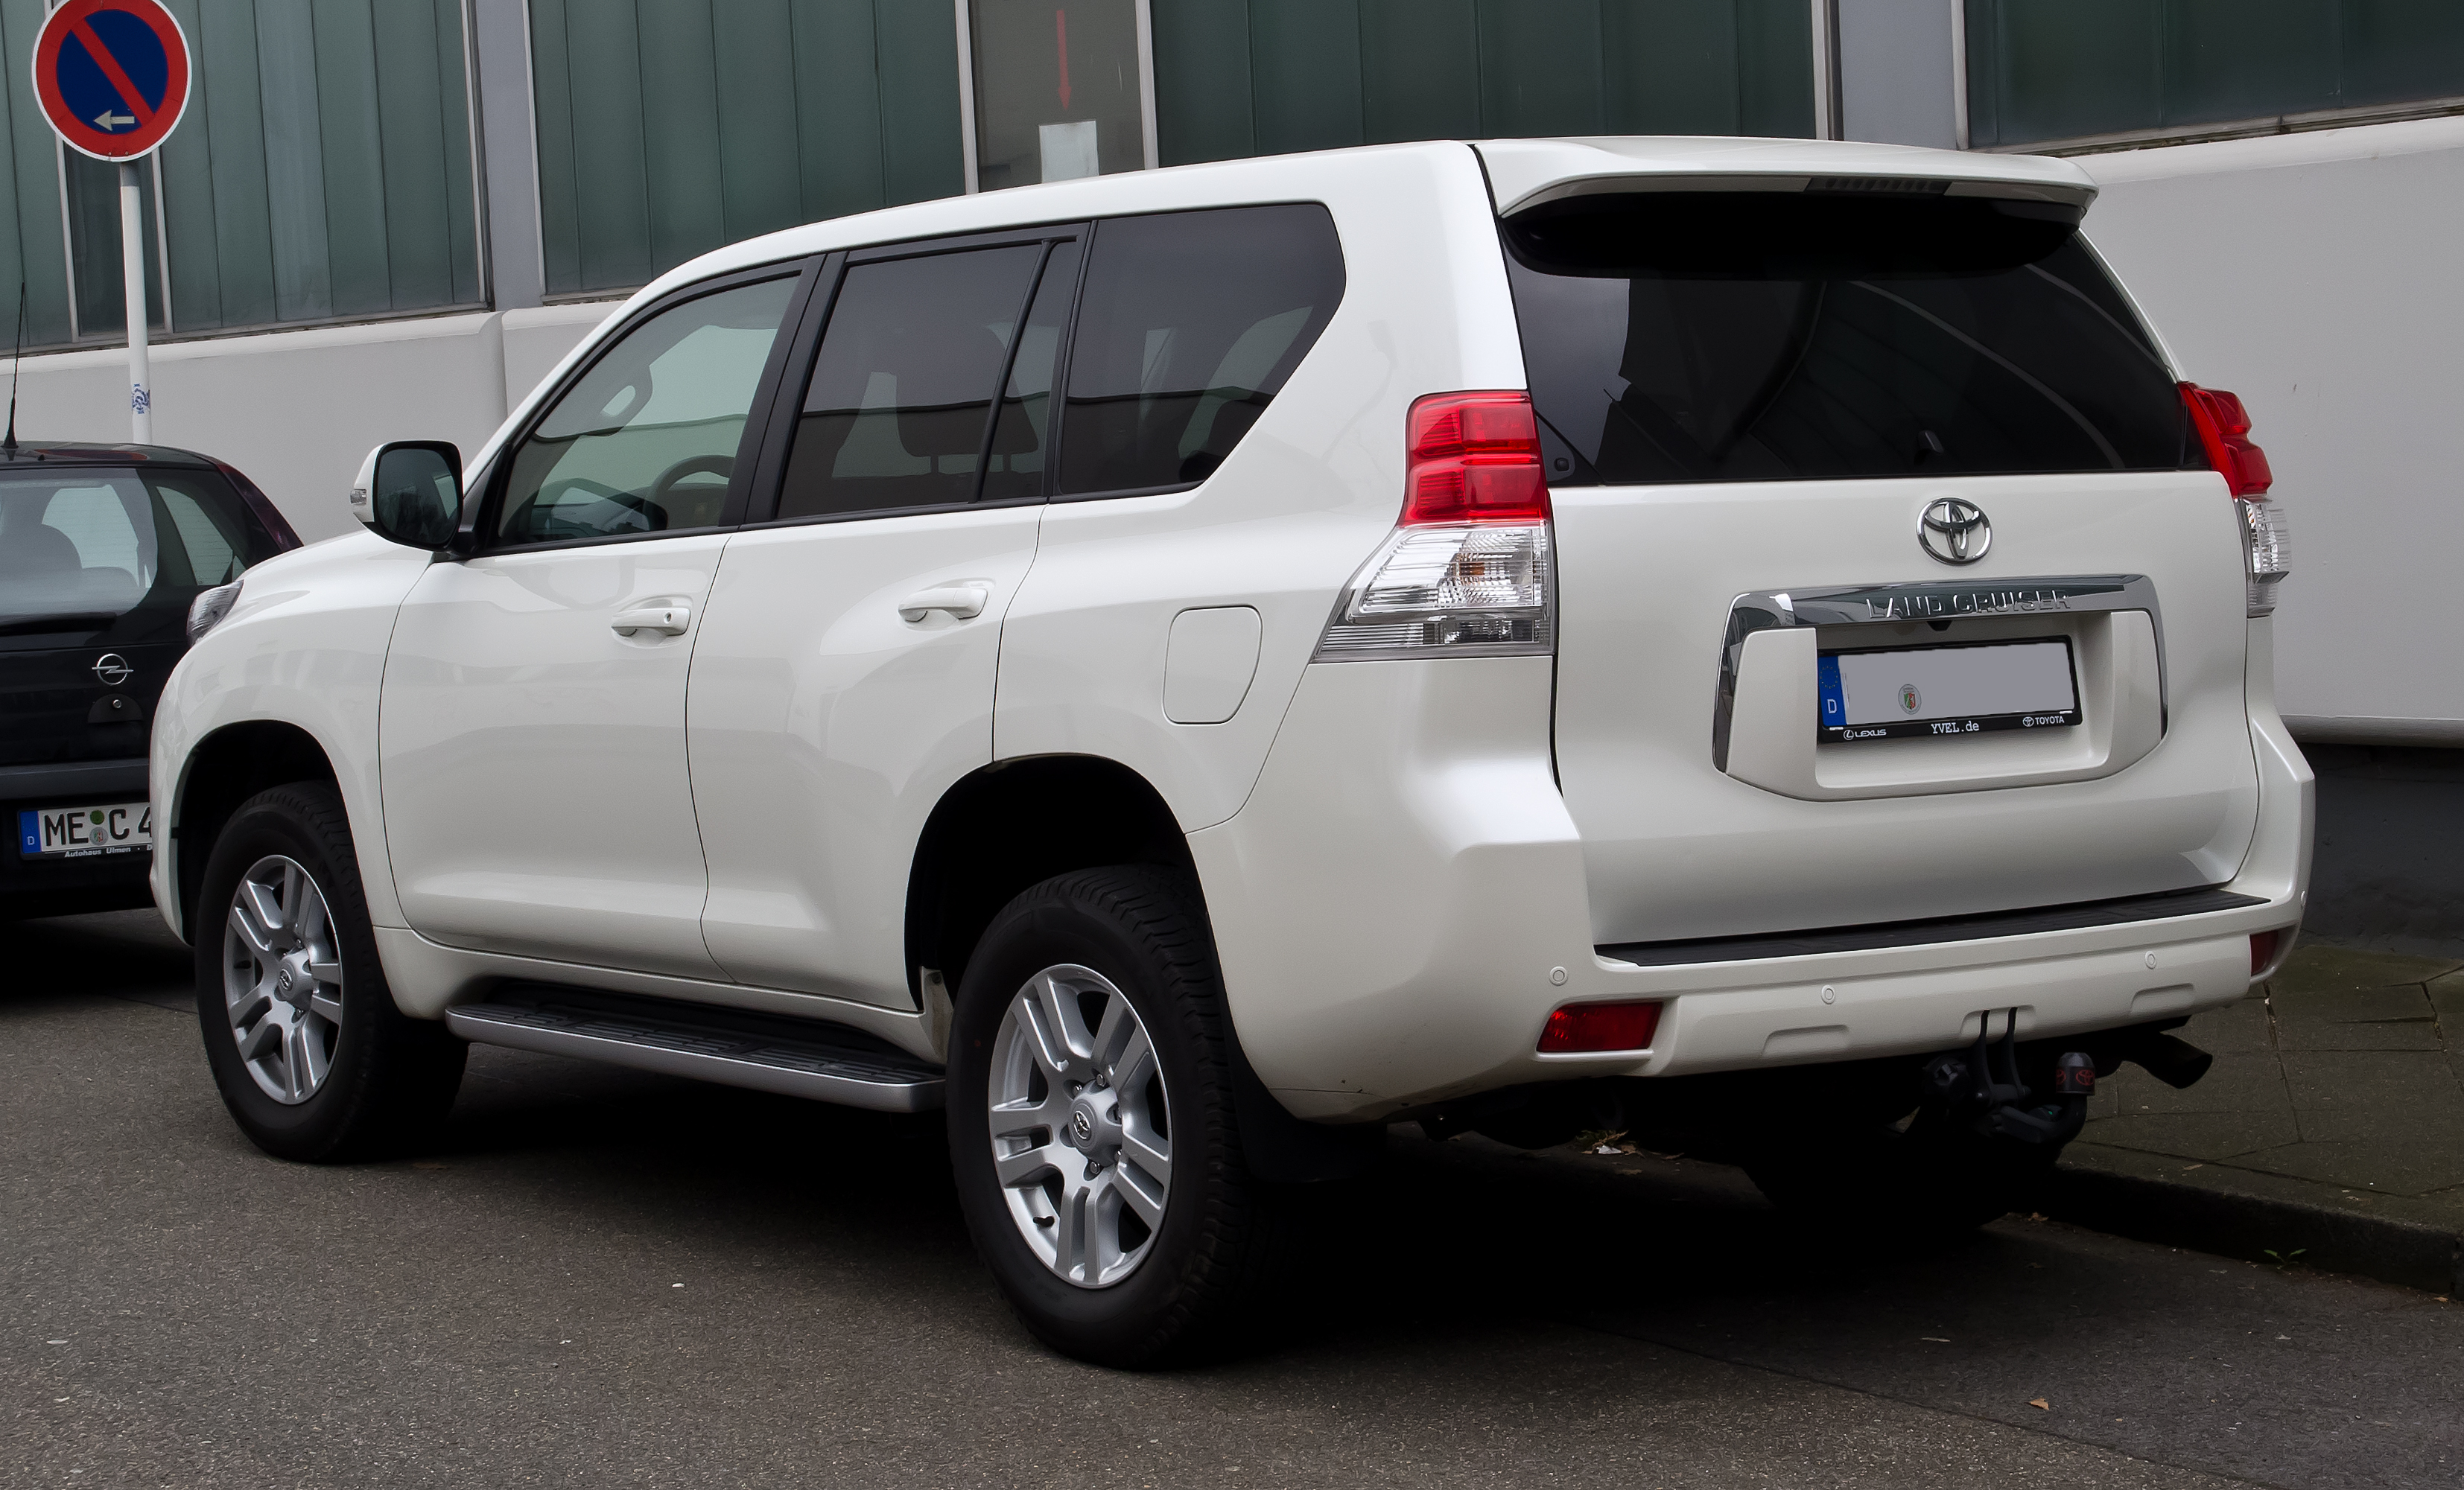 Description Toyota Land Cruiser 3.0 D-4D Life (J15) – Heckansicht